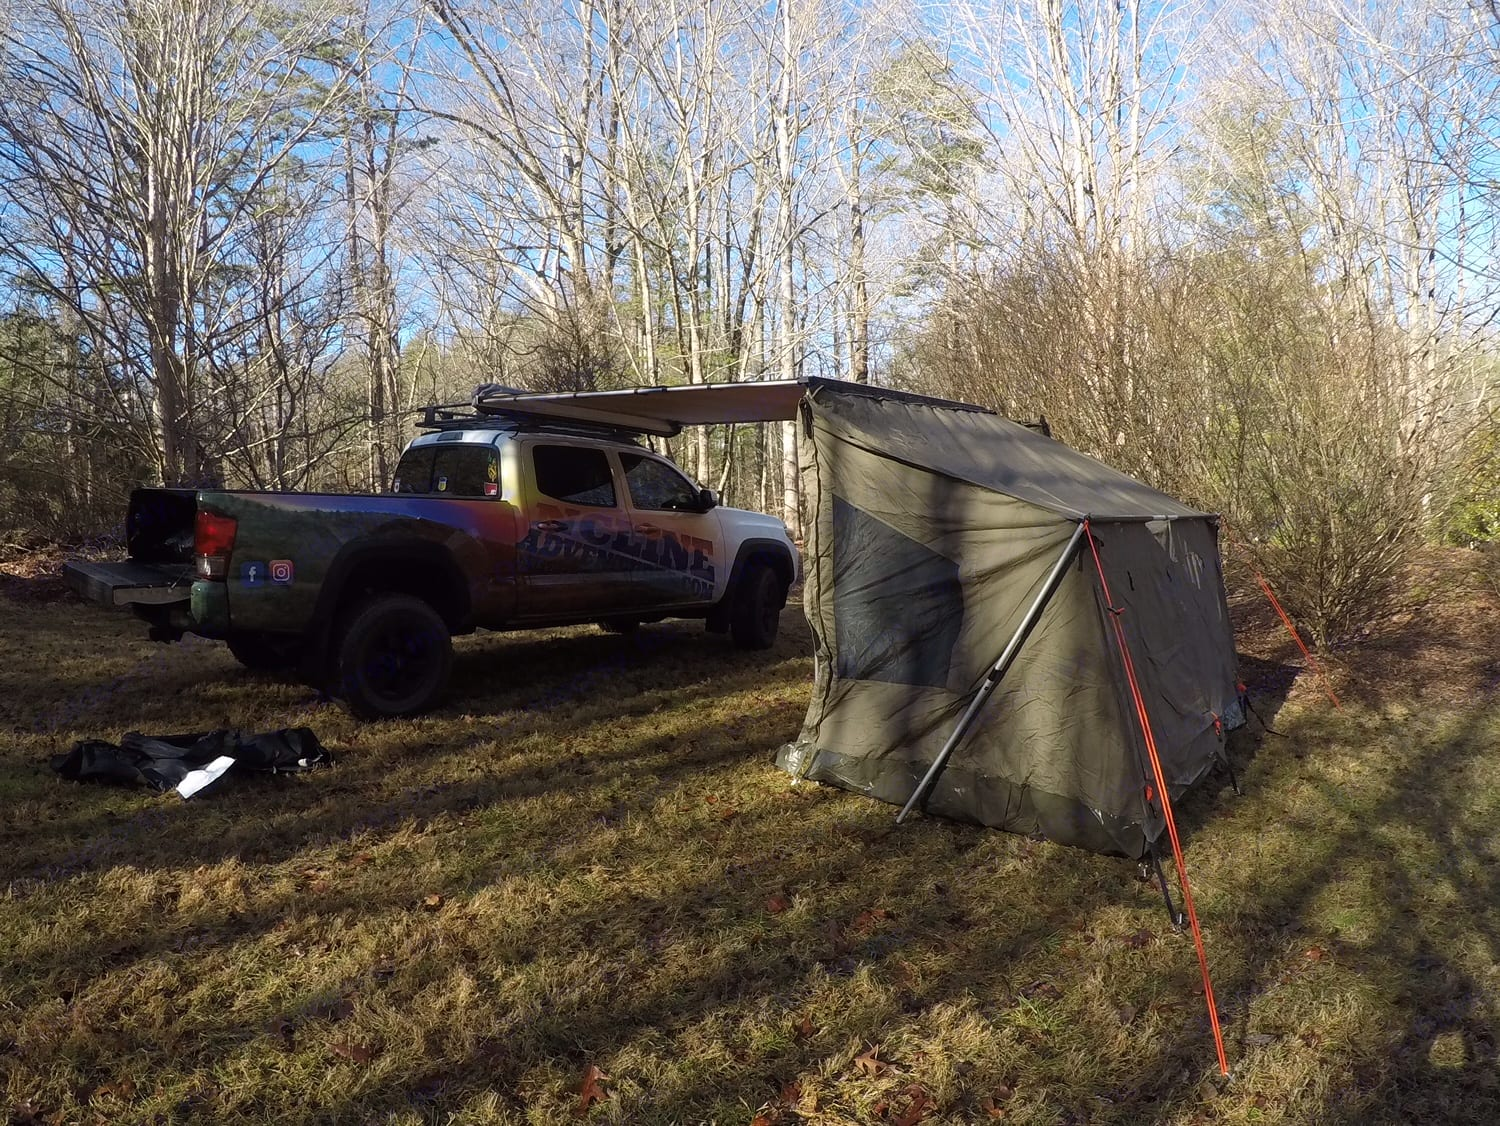 Here is the truck with the 3 man tent attached at a campsite. It is the perfect fit for any site, leaving you lots of room to chill near the fire, grill out or play some games. You can also hang out under the awning. You enter in the tent from underneath the awning so you are sure to stay dry and in the shade. Toyota Tacoma 2016